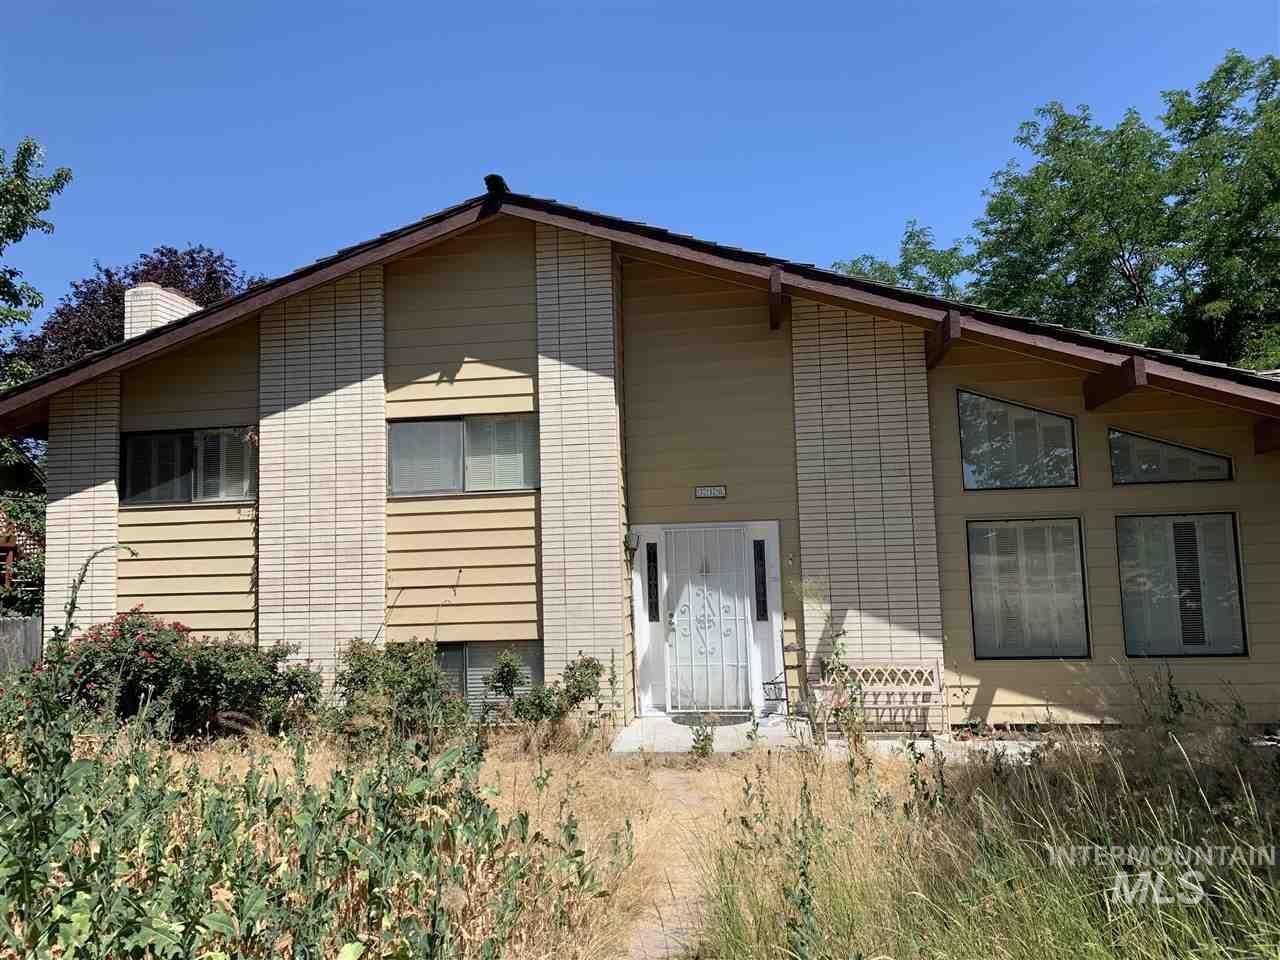 Great investment home. 4 bed, 3 bath, vaulted ceilings. Great space for entertainment! Yard has lots of potential and offers RV parking. Wood burning fireplace and 2 storage sheds. Lots of storage throughout the house. Potential is endless to make it your own!